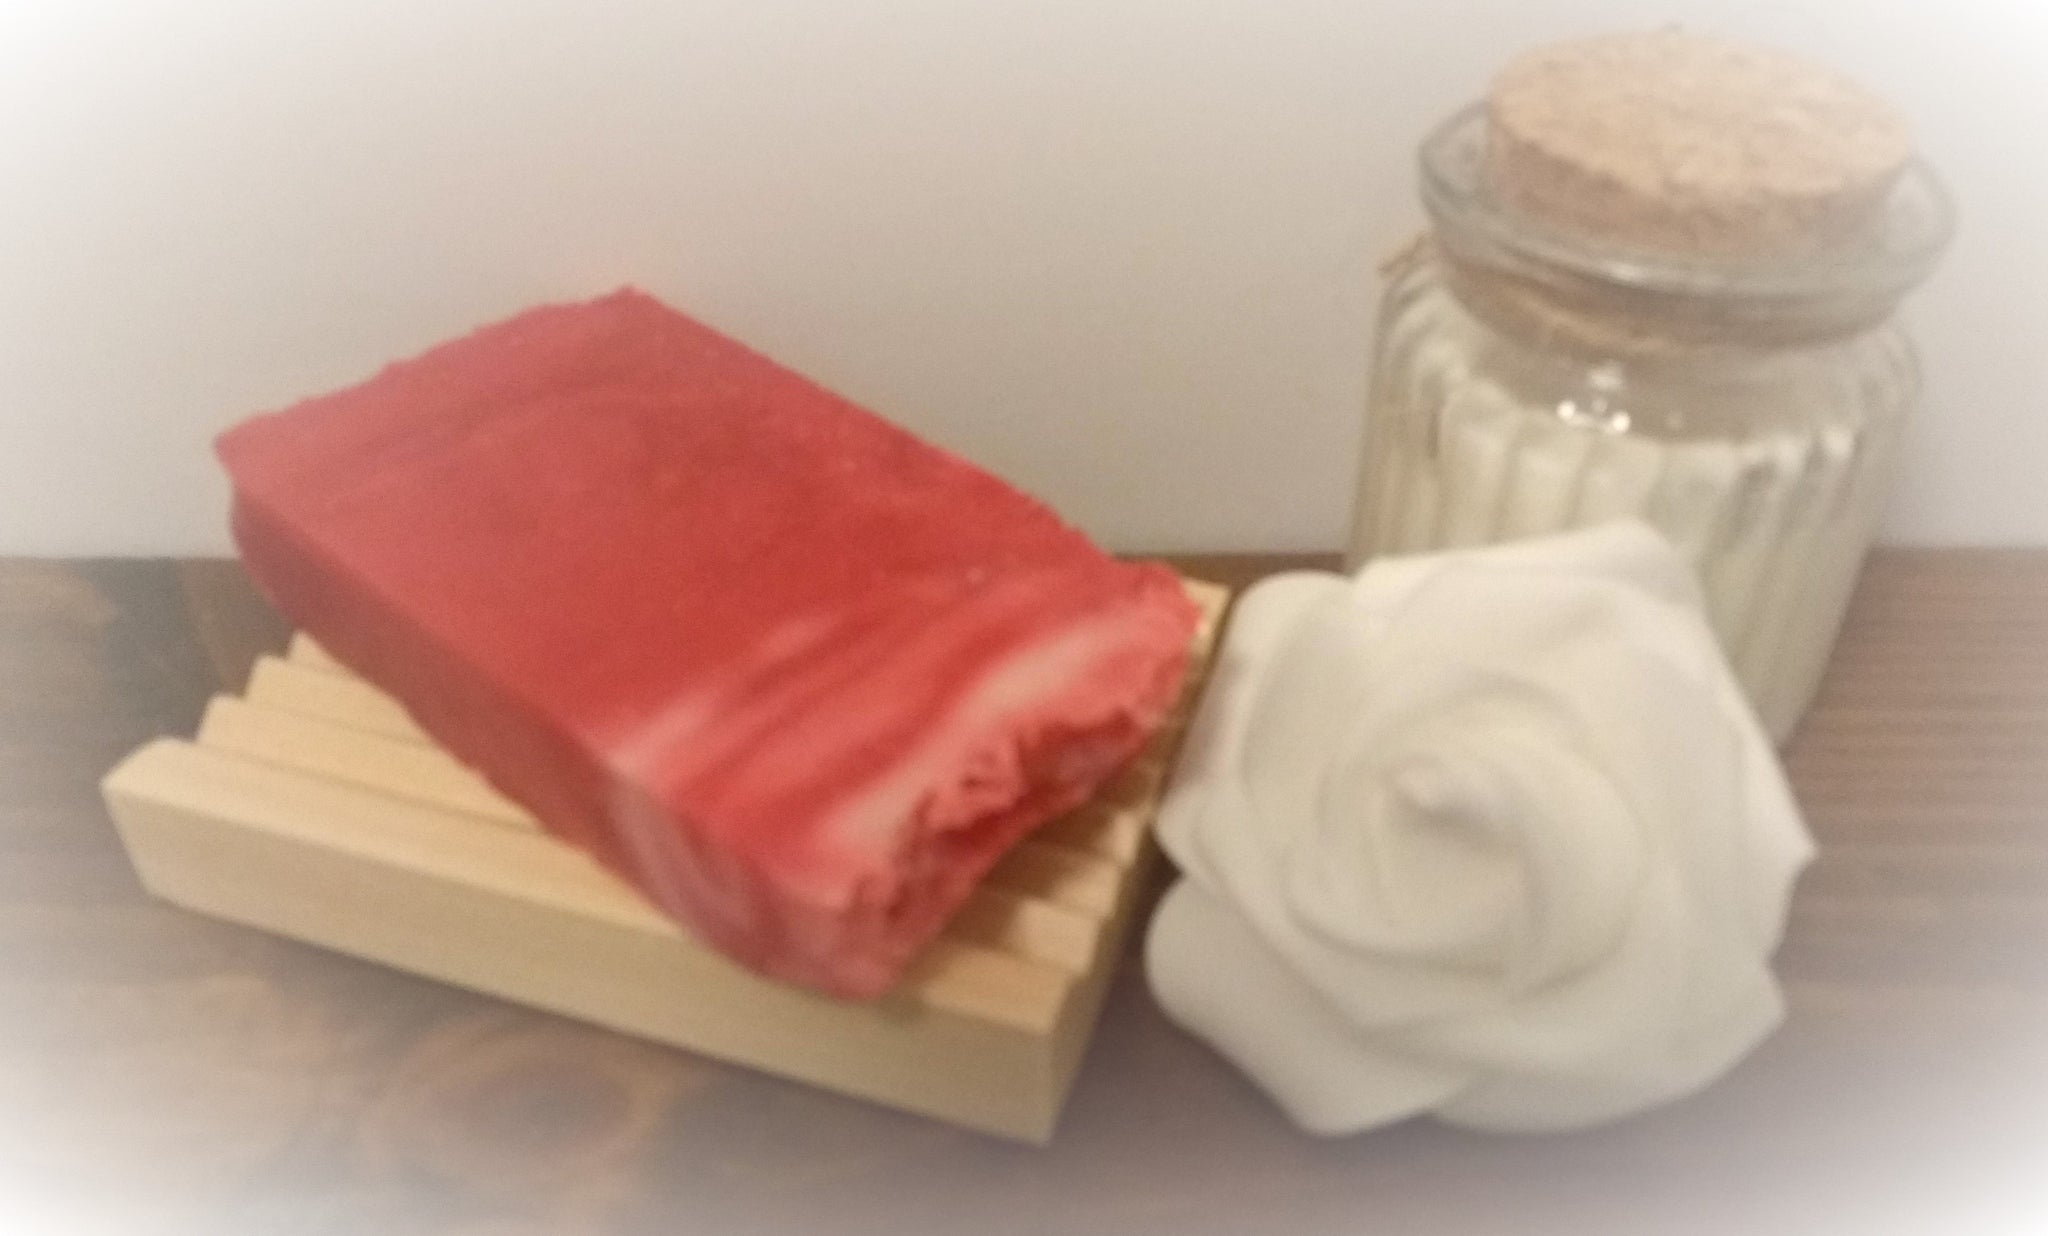 Pink Soap slice on soap dish displayed next to rose and candle